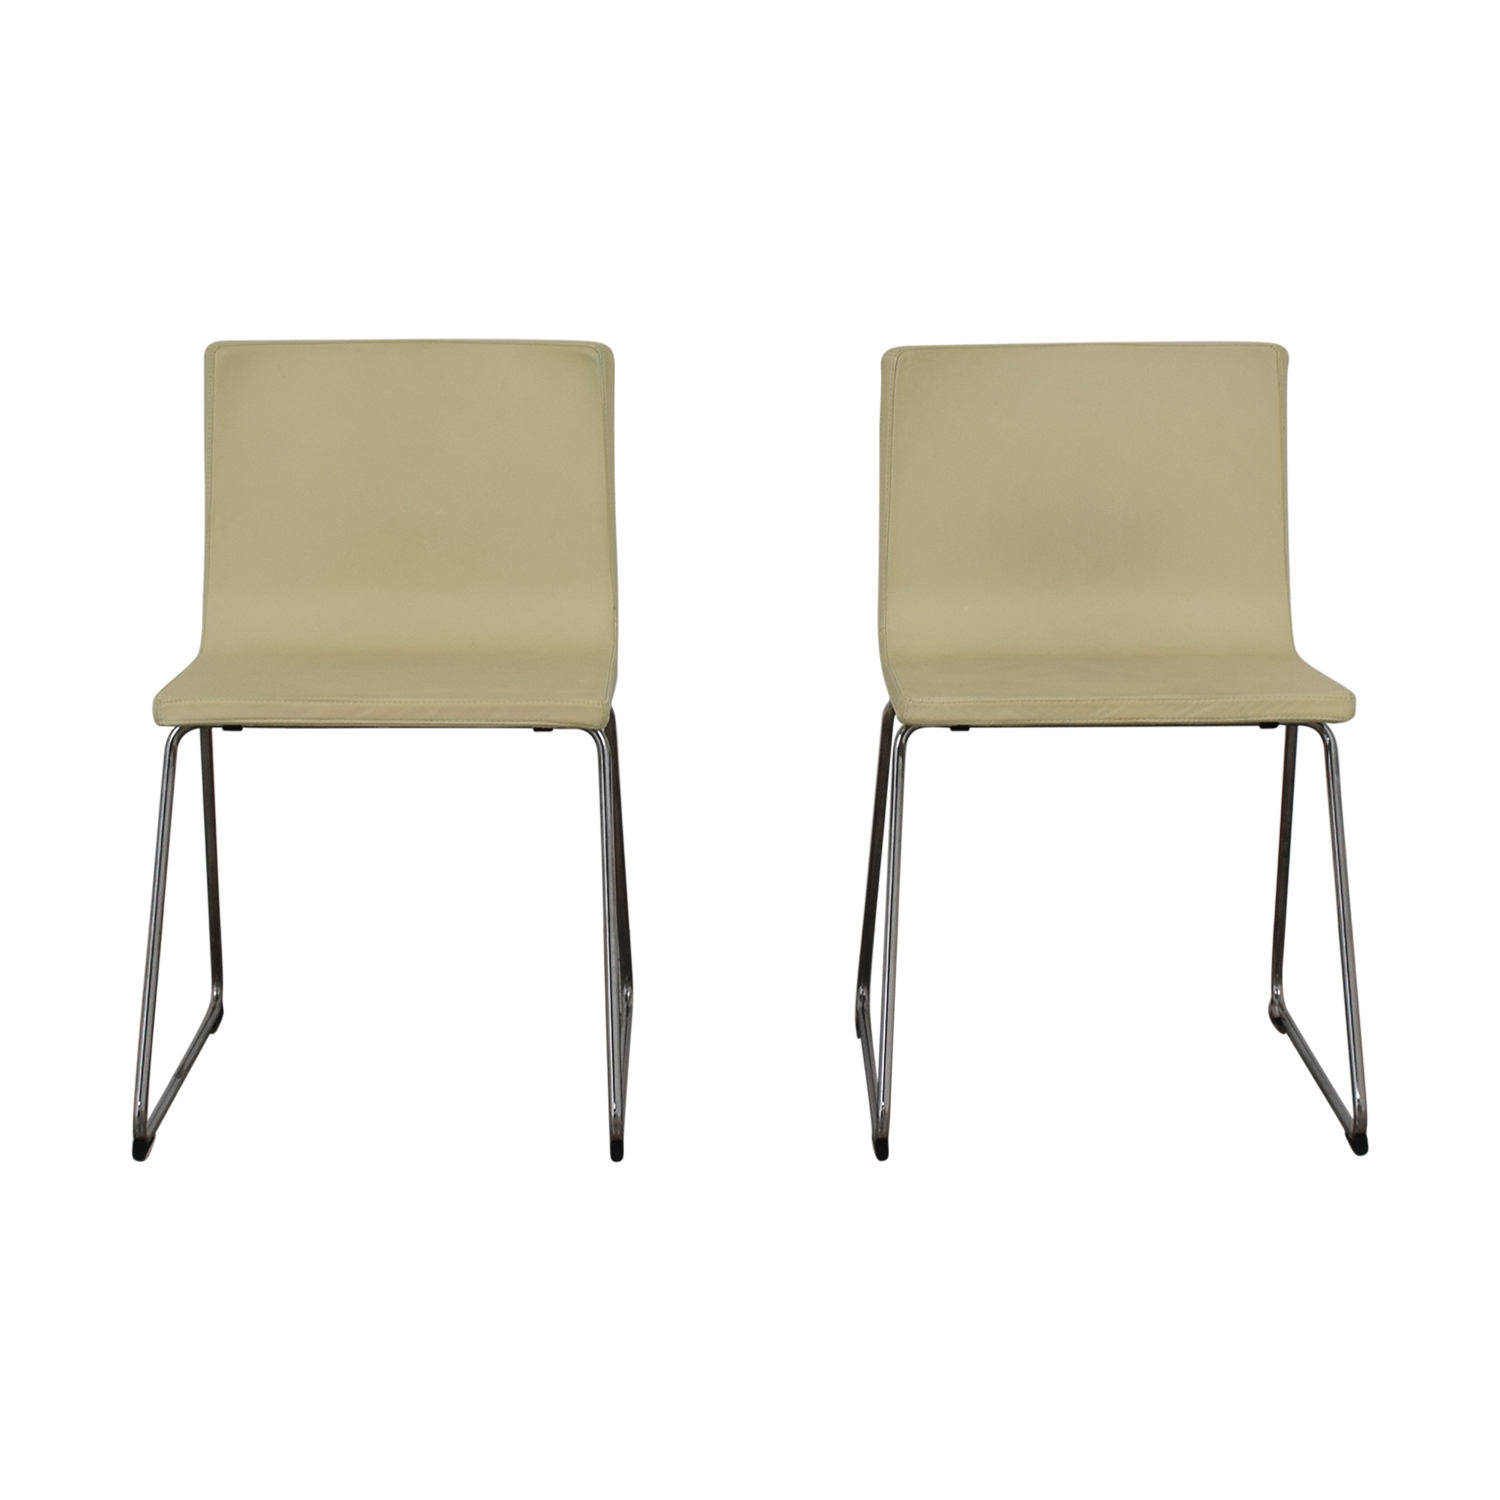 IKEA IKEA Bernhard Leather Dining Chairs Chairs  sc 1 st  Kaiyo & 84% OFF - IKEA IKEA Bernhard Leather Dining Chairs / Chairs